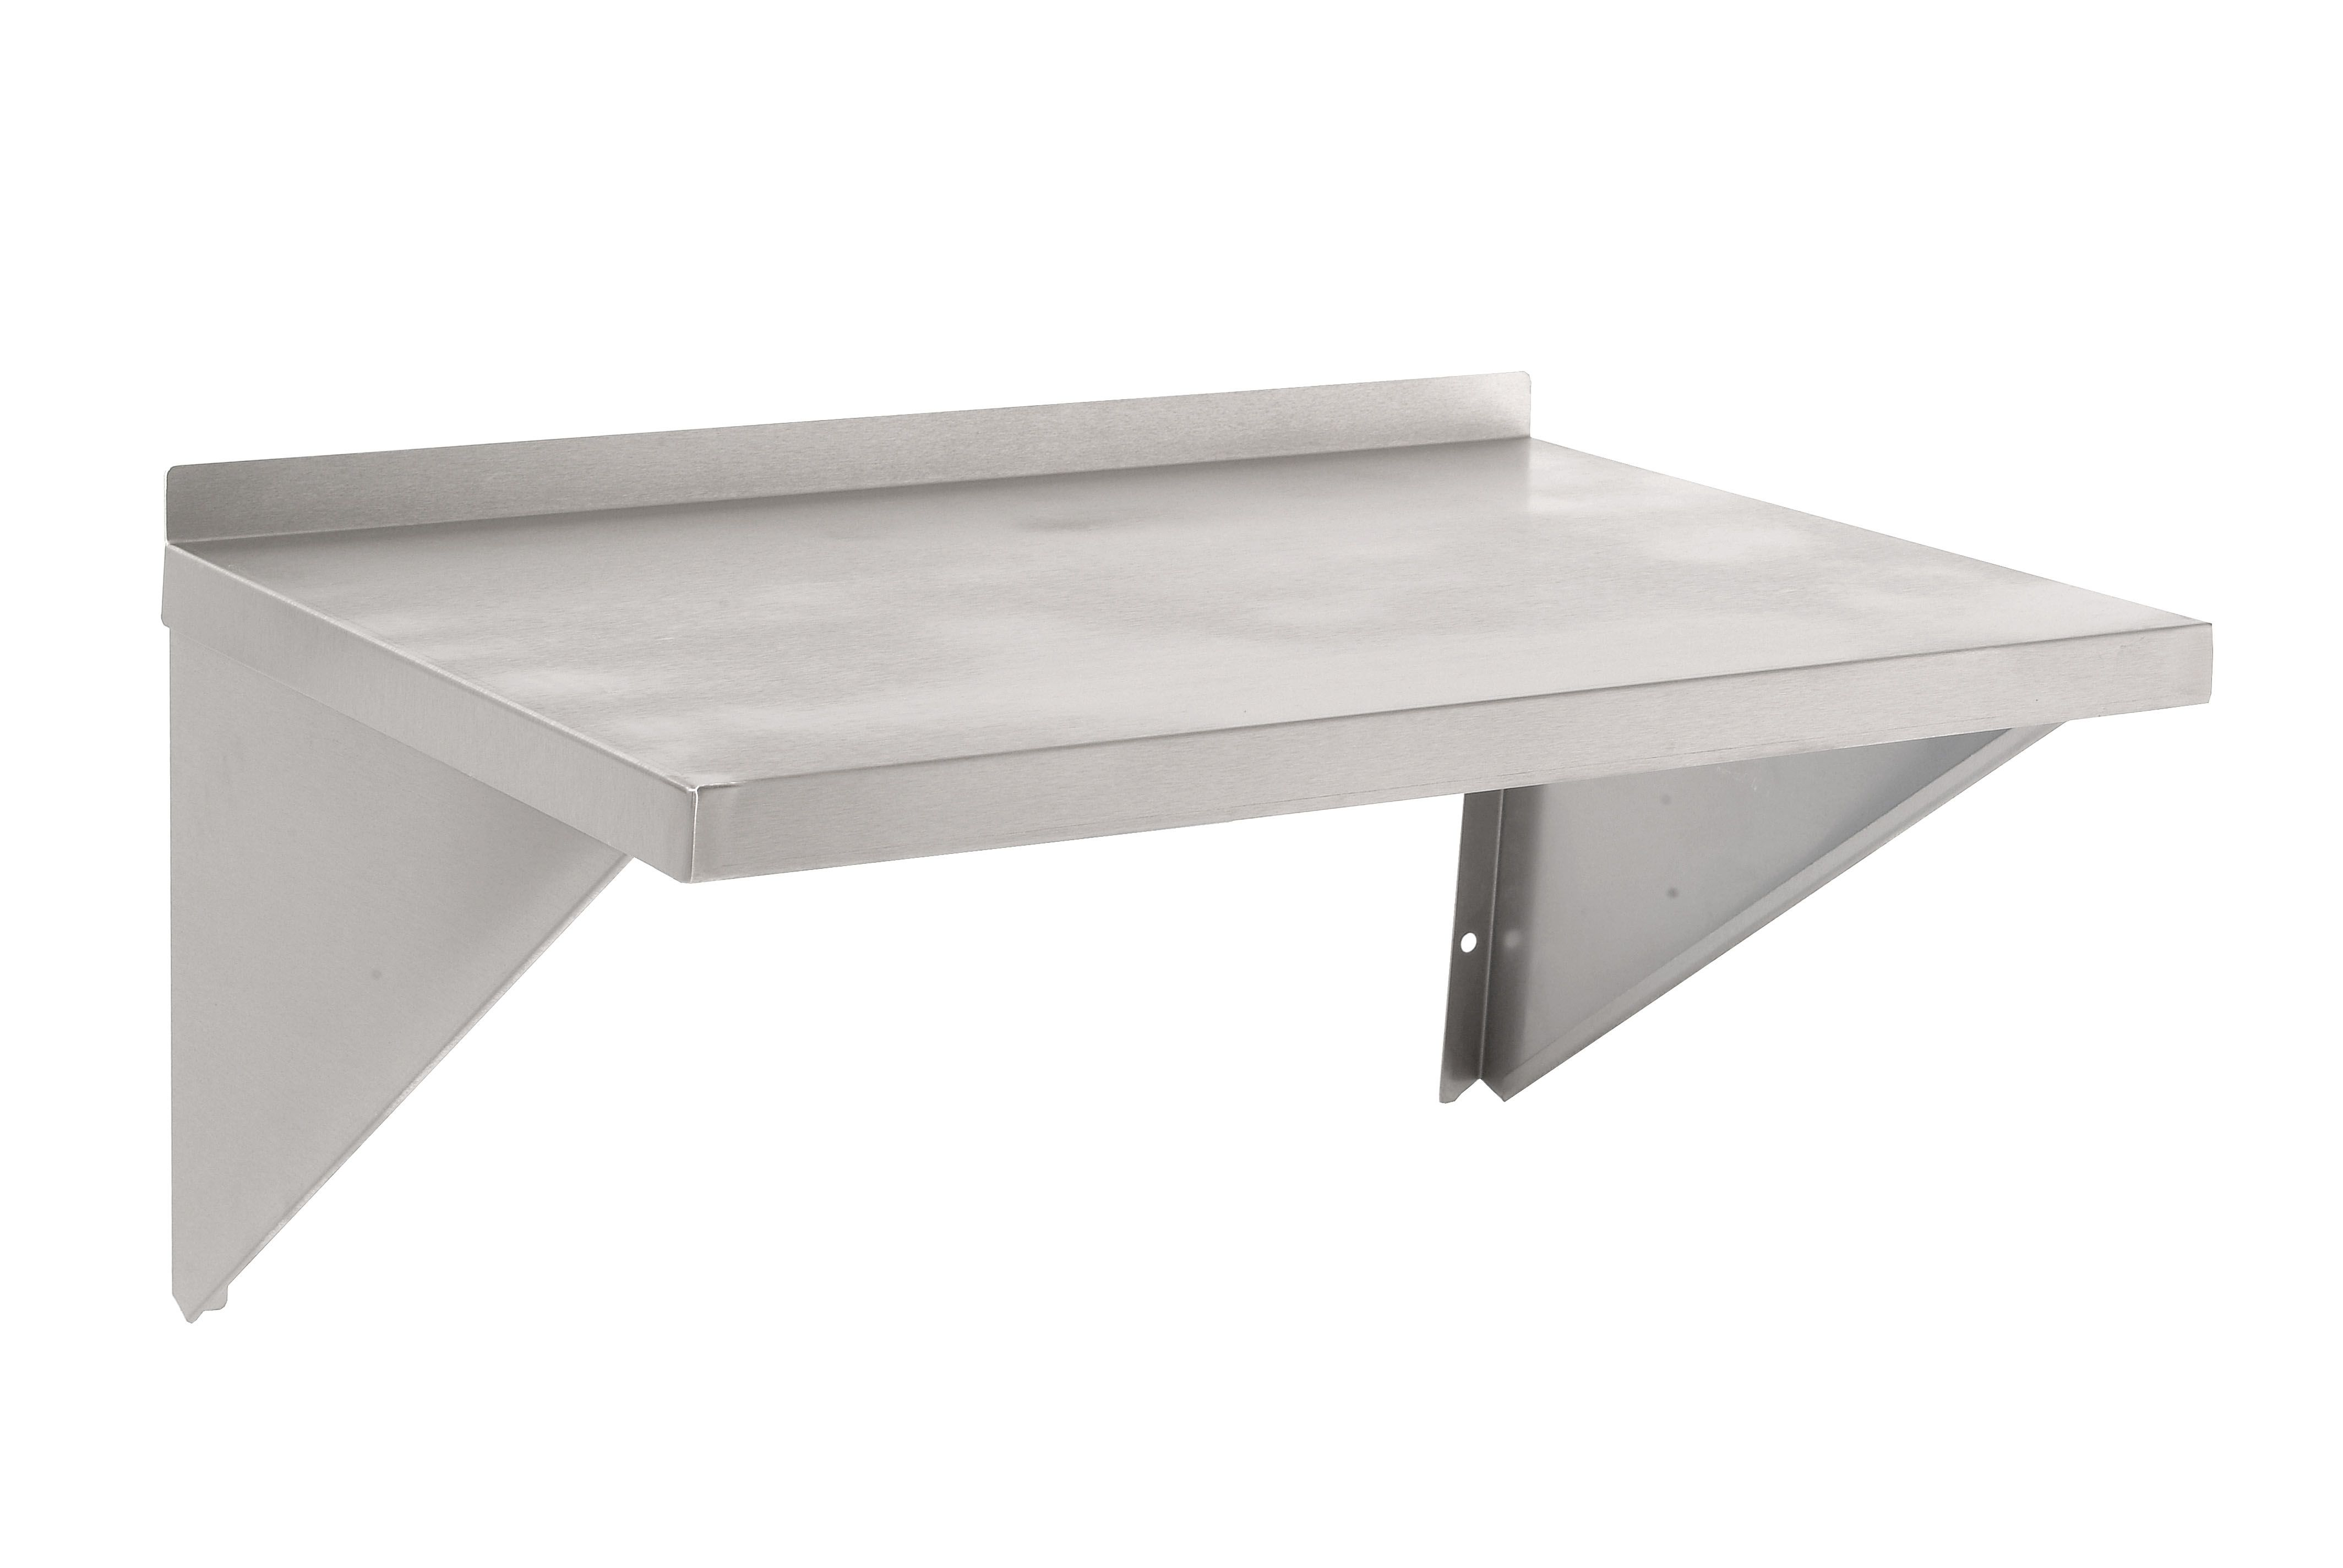 Unique White Metal Floating Microwave Shelf With Simplistic Design For Free Standing Racks In Minimalist Kitchen